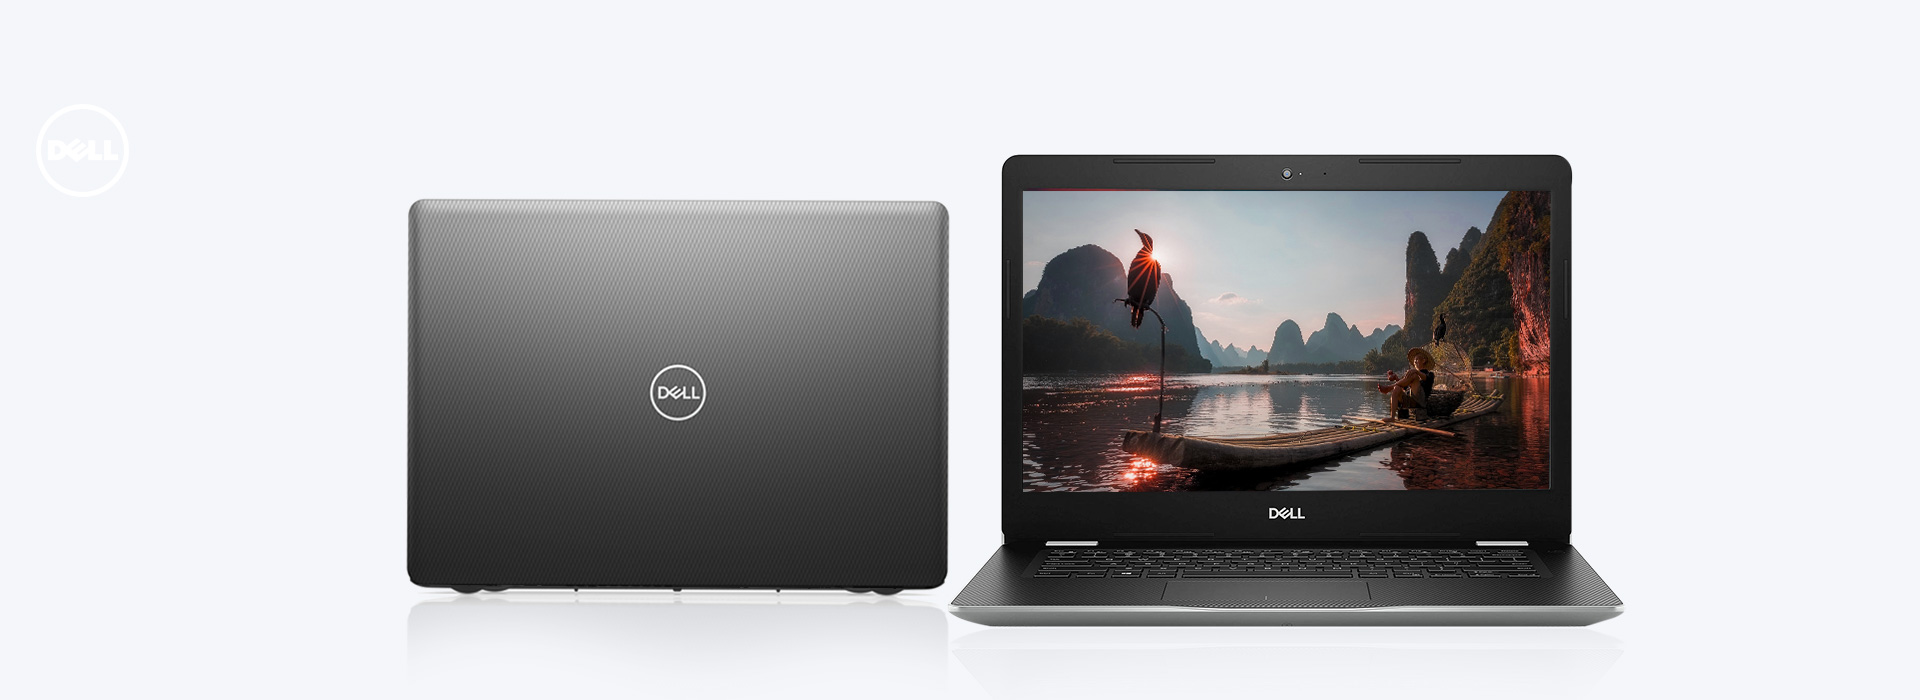 thiết kế dell inspiron 3480